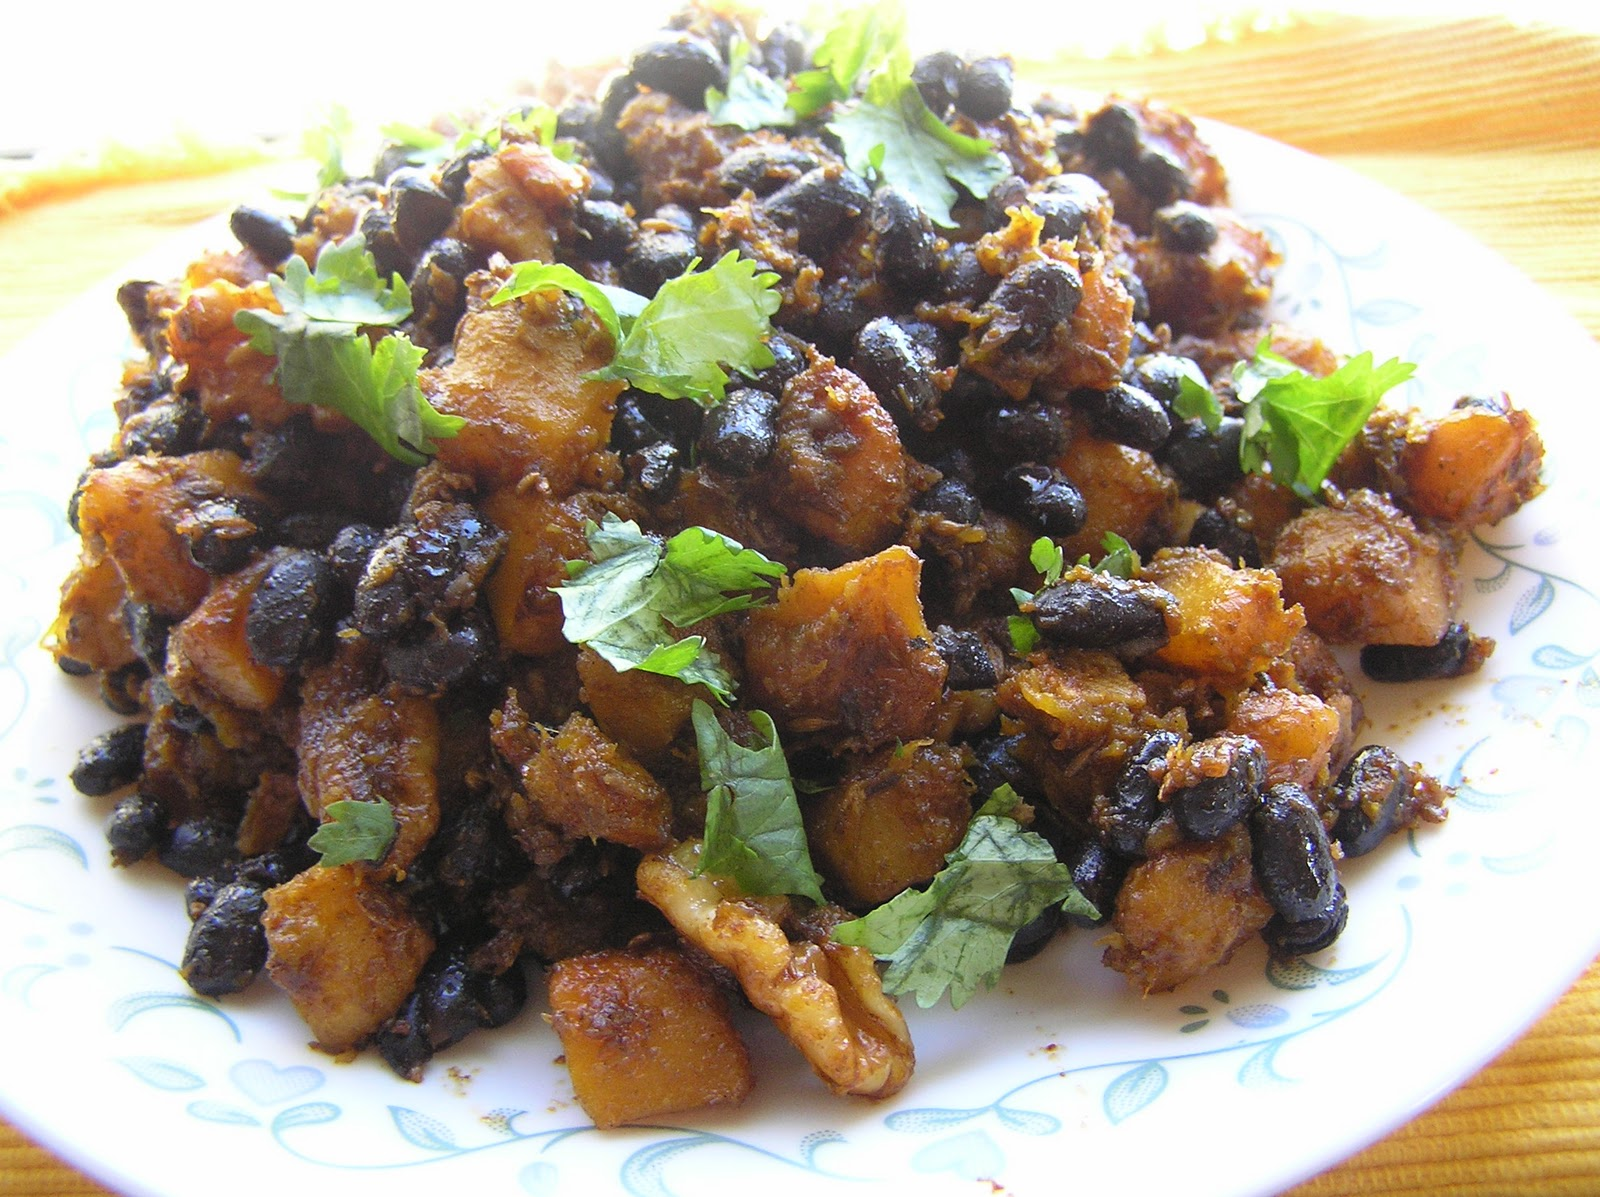 The Melting Pot: Butternut Squash with Black Beans